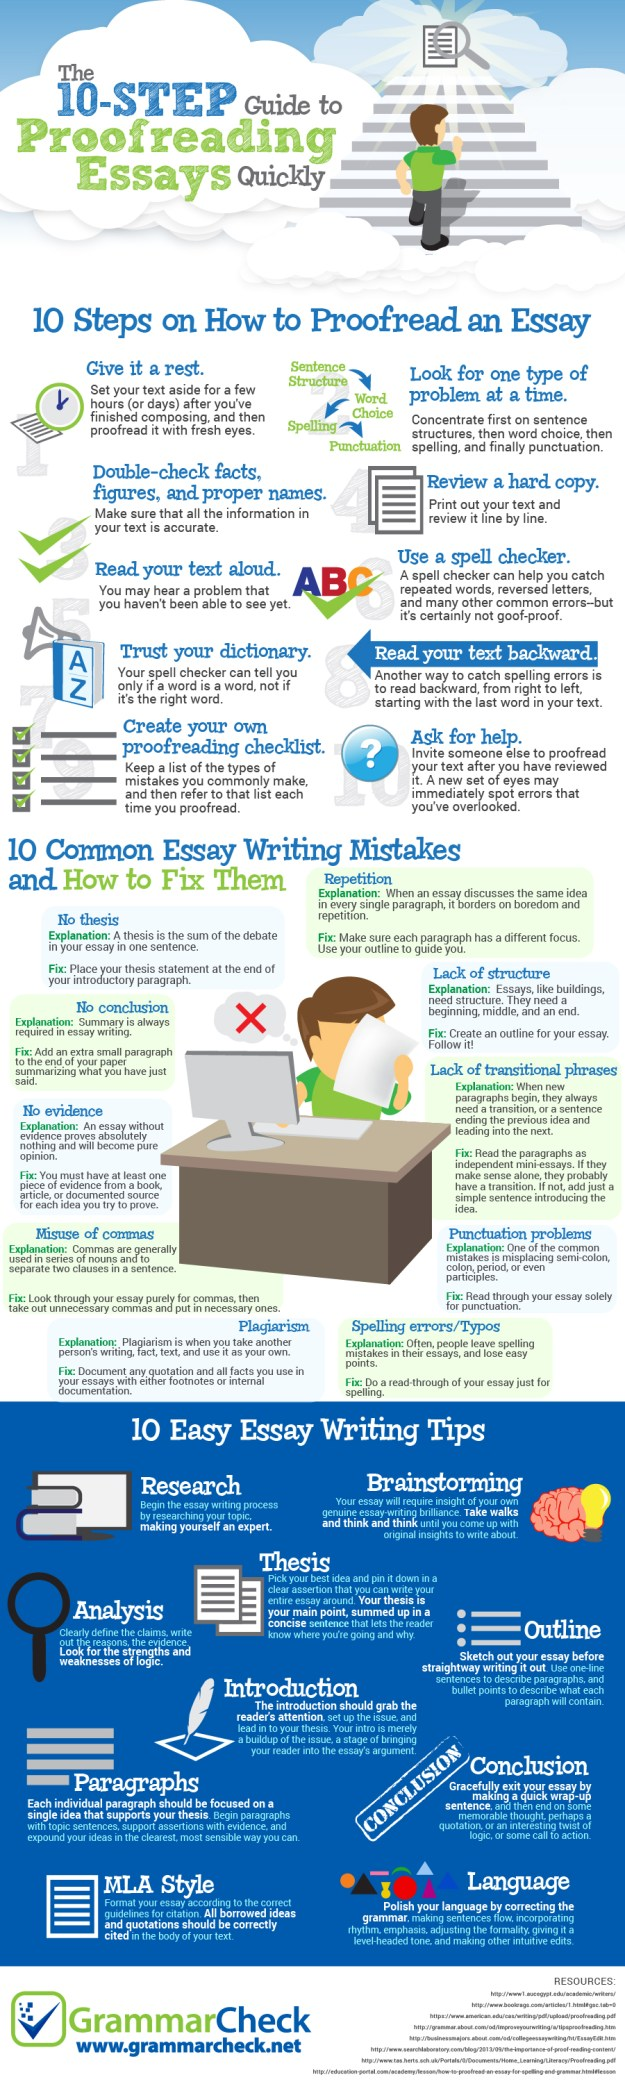 The 10-Step Guide to Proofreading Essays Quickly (Infographic)